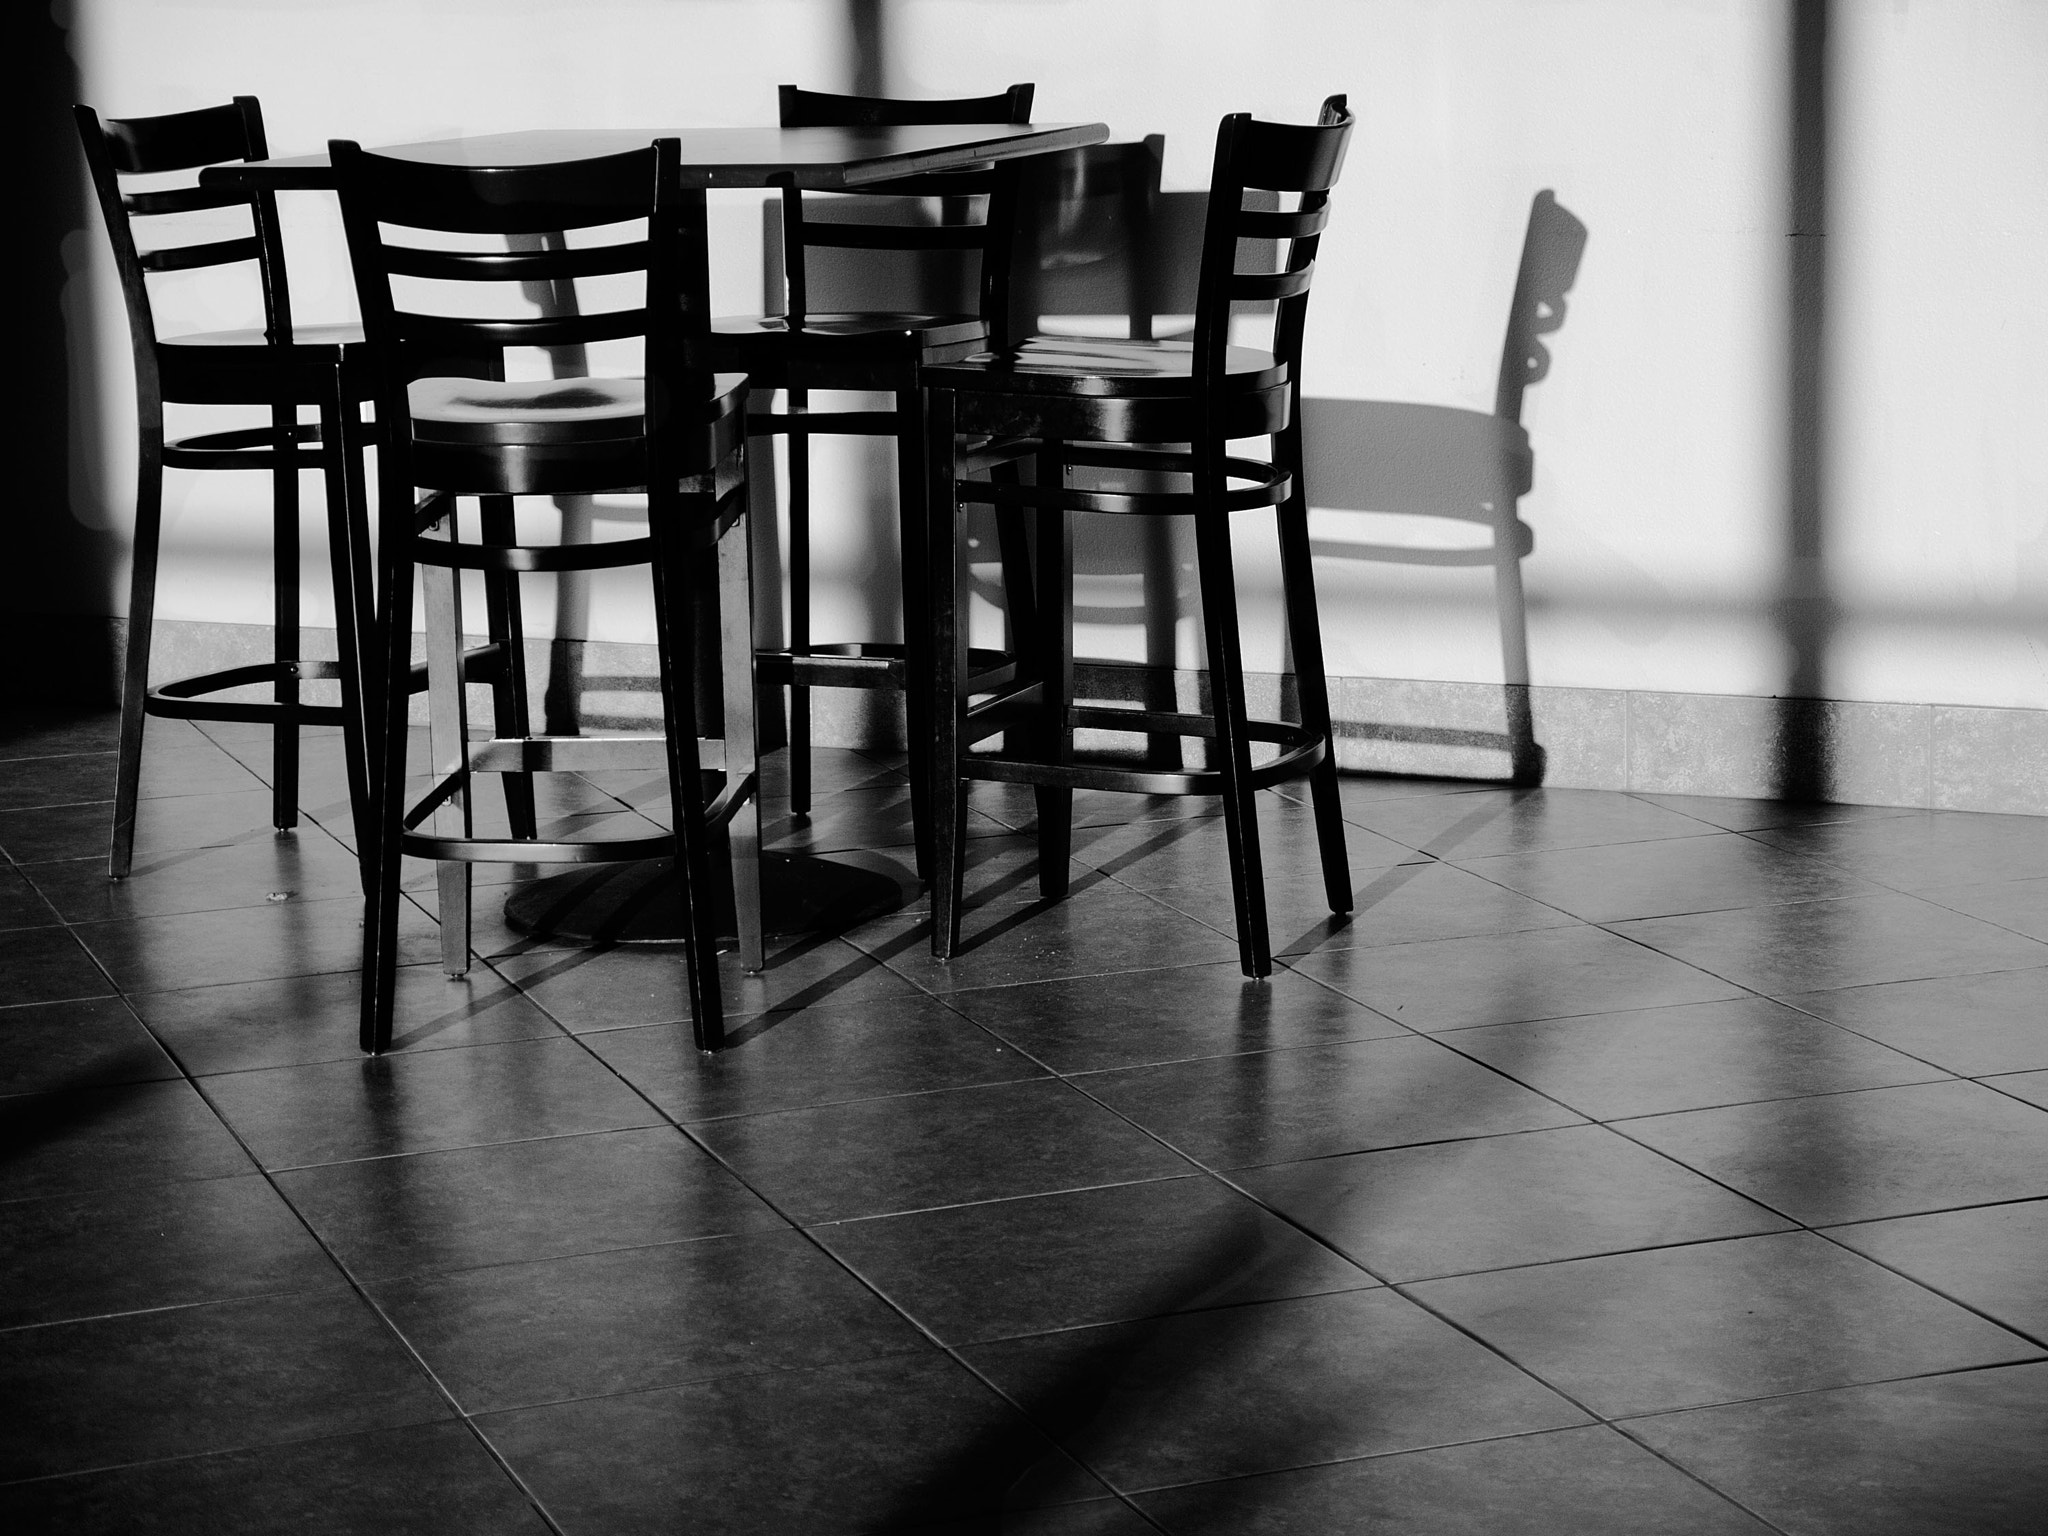 Photograph Etude with Chairs #13 by Milena Robinson on 500px